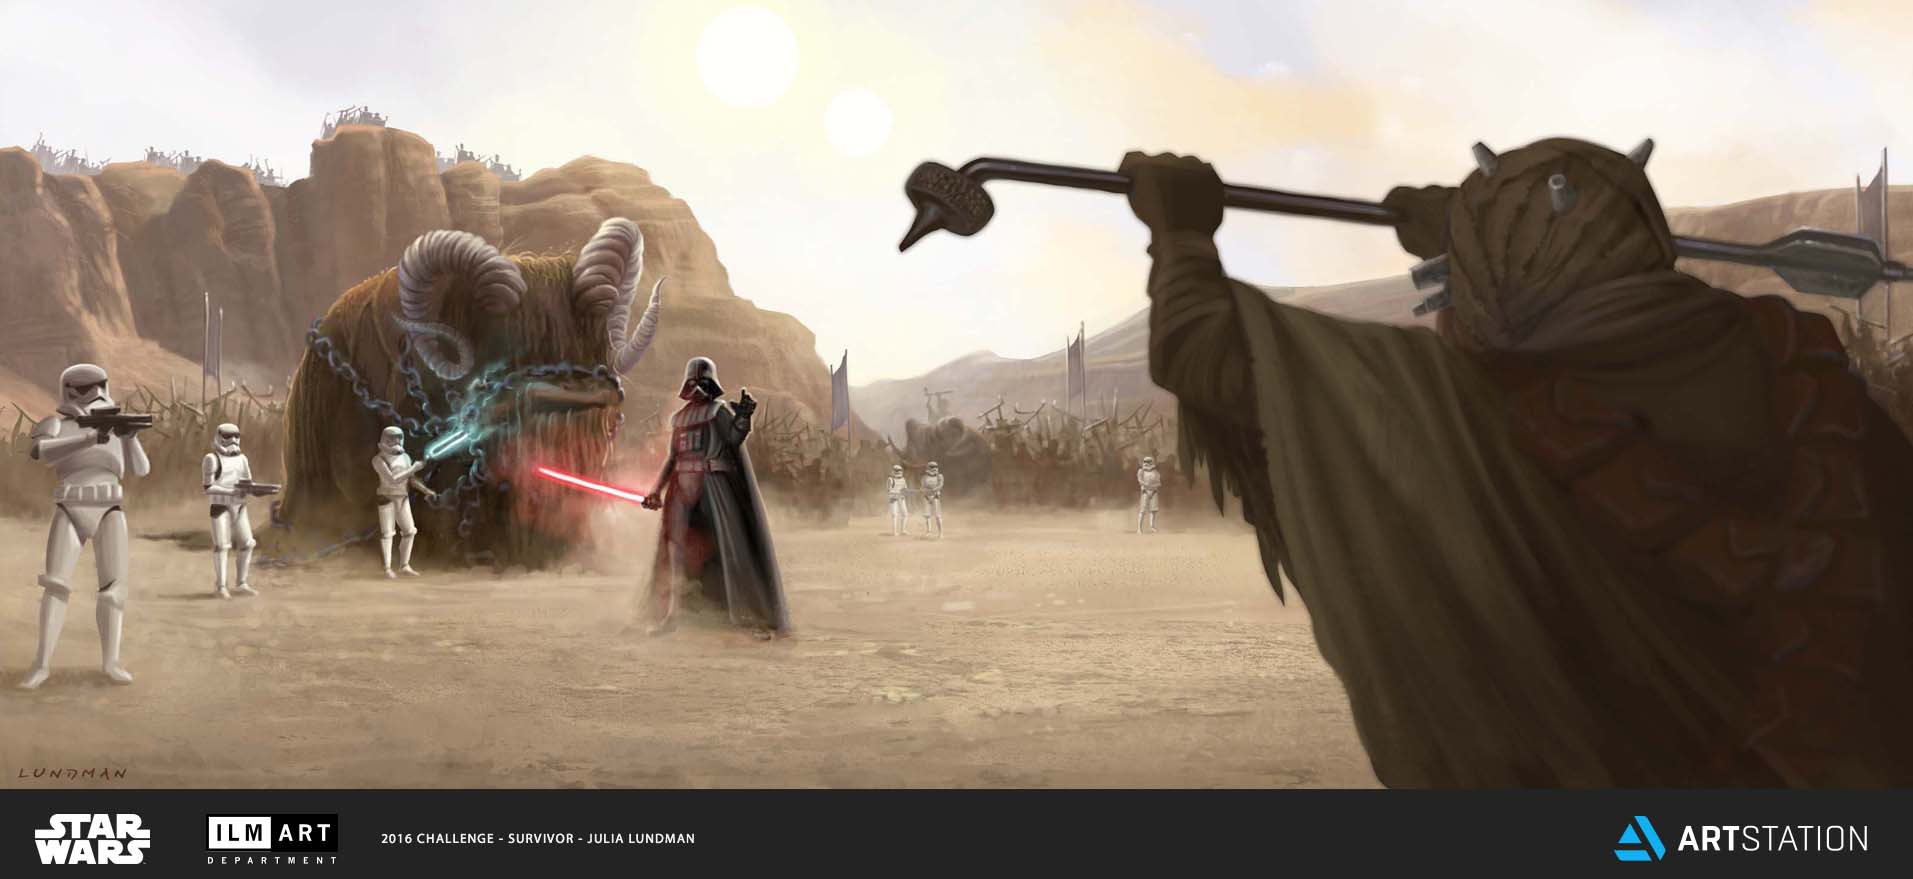 KEYFRAME 1: WHILE ON TATOOINE SEARCHING FOR THE MISSING DEATH STAR PLANS, DARTH VADER CONFRONTS THE LEADER OF A TUSKEN RAIDER TRIBE BY THREATENING AND KILLING HIS BANTHA.